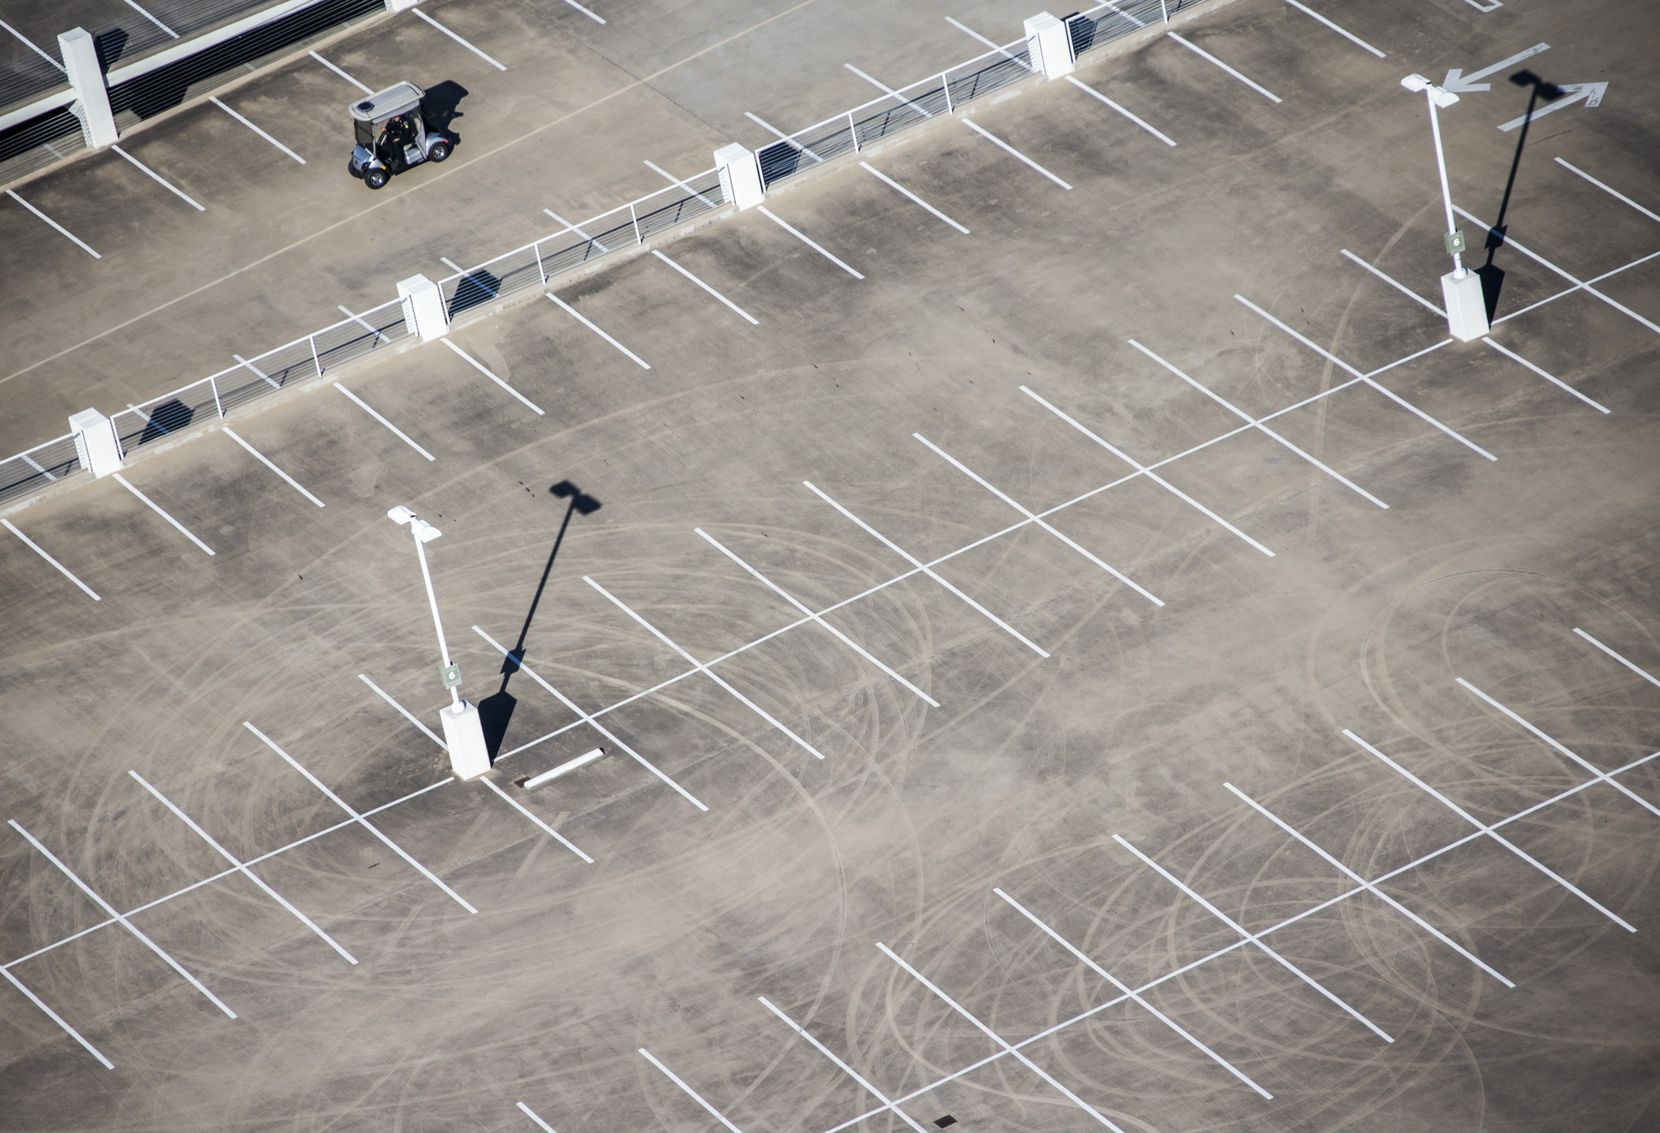 A security guard drives a golf cart past tire marks showing evidence of stunt driving on the top level of a NorthPark parking garage where two men were  struck by a car in March.